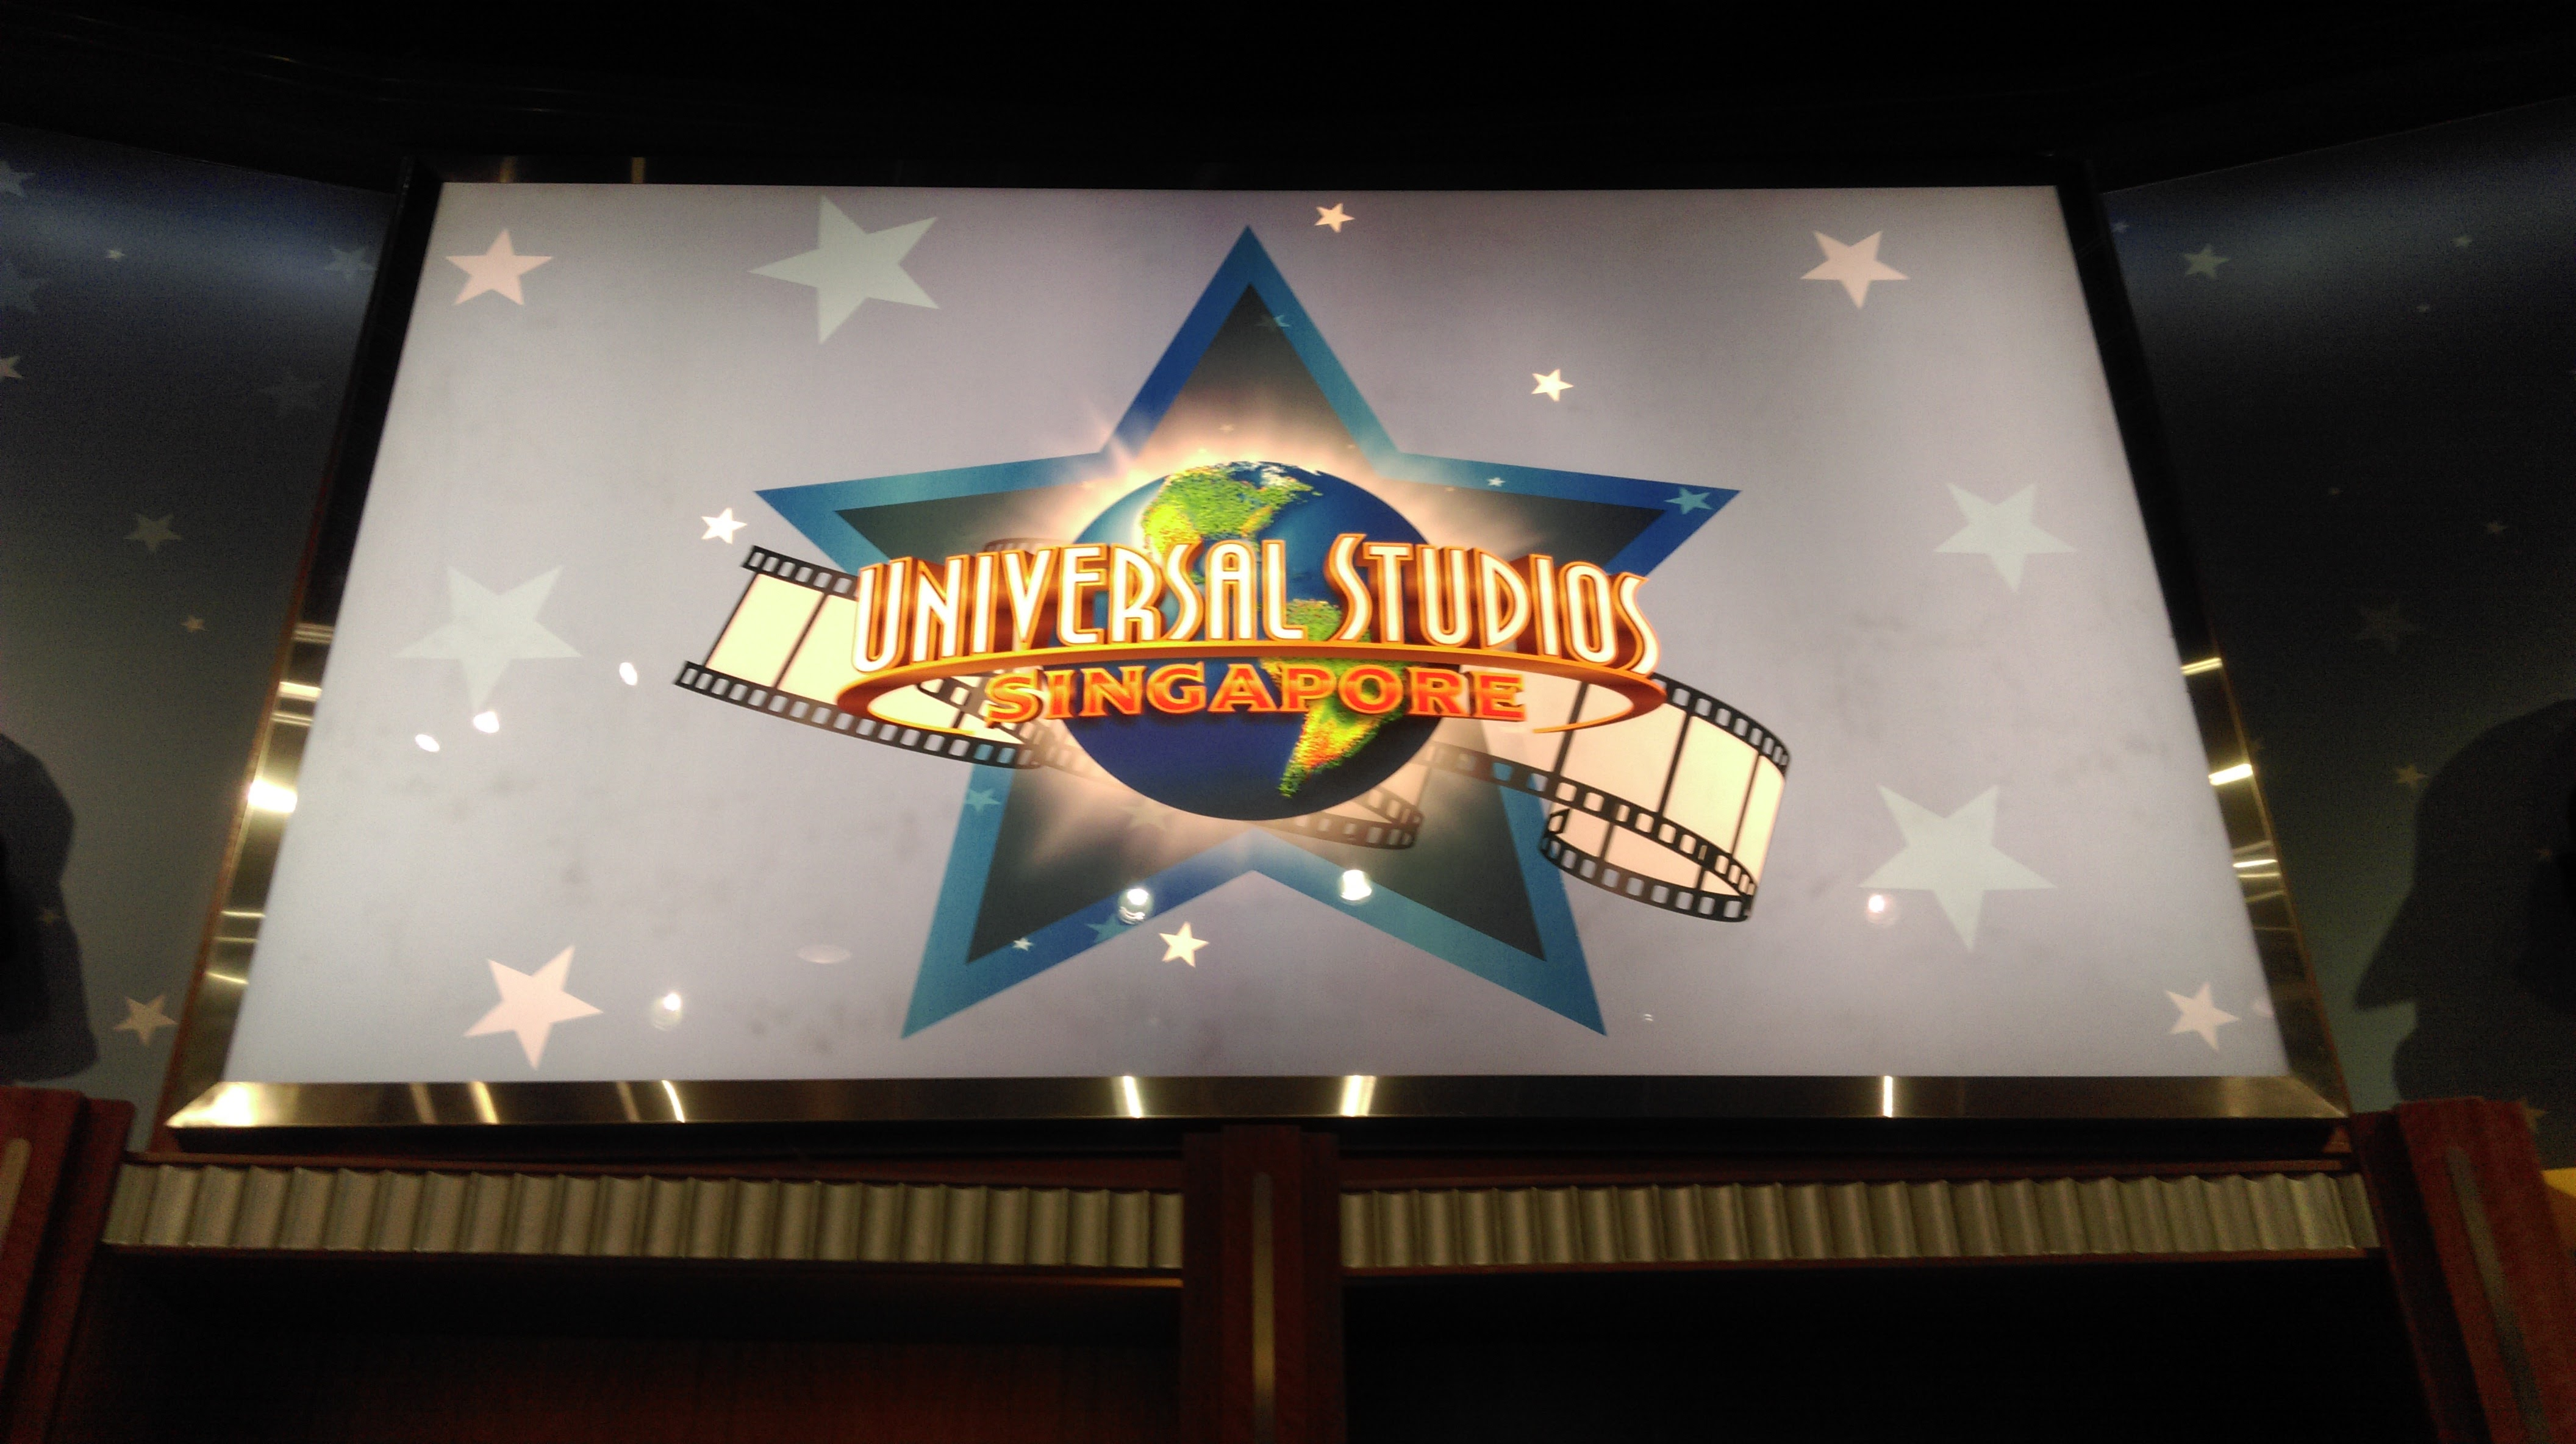 Things-to-do-in-Singapore Universal studios